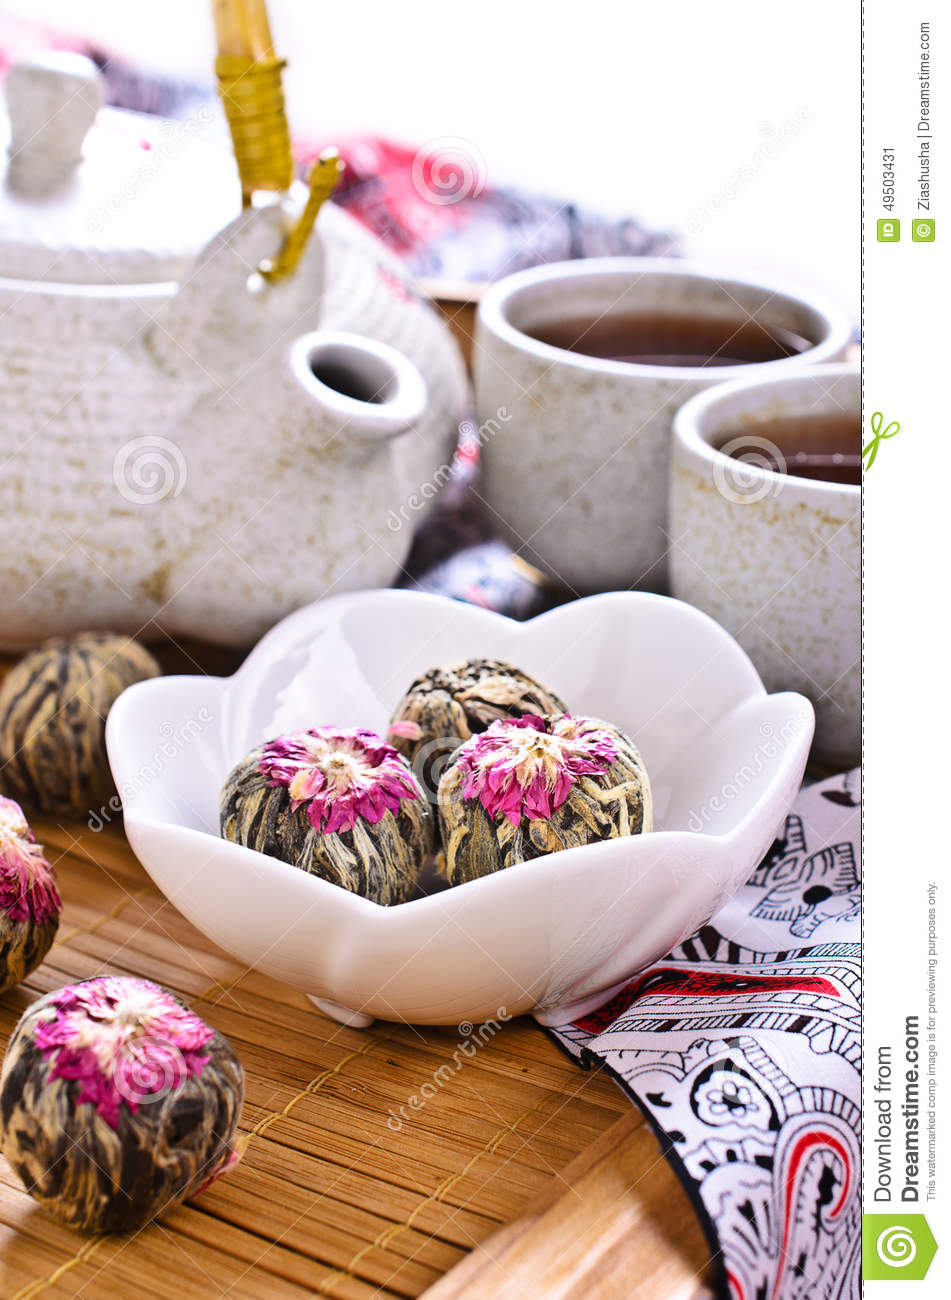 Green Tea In The Form Of A Ball With A Red Flower Stock Photo ...